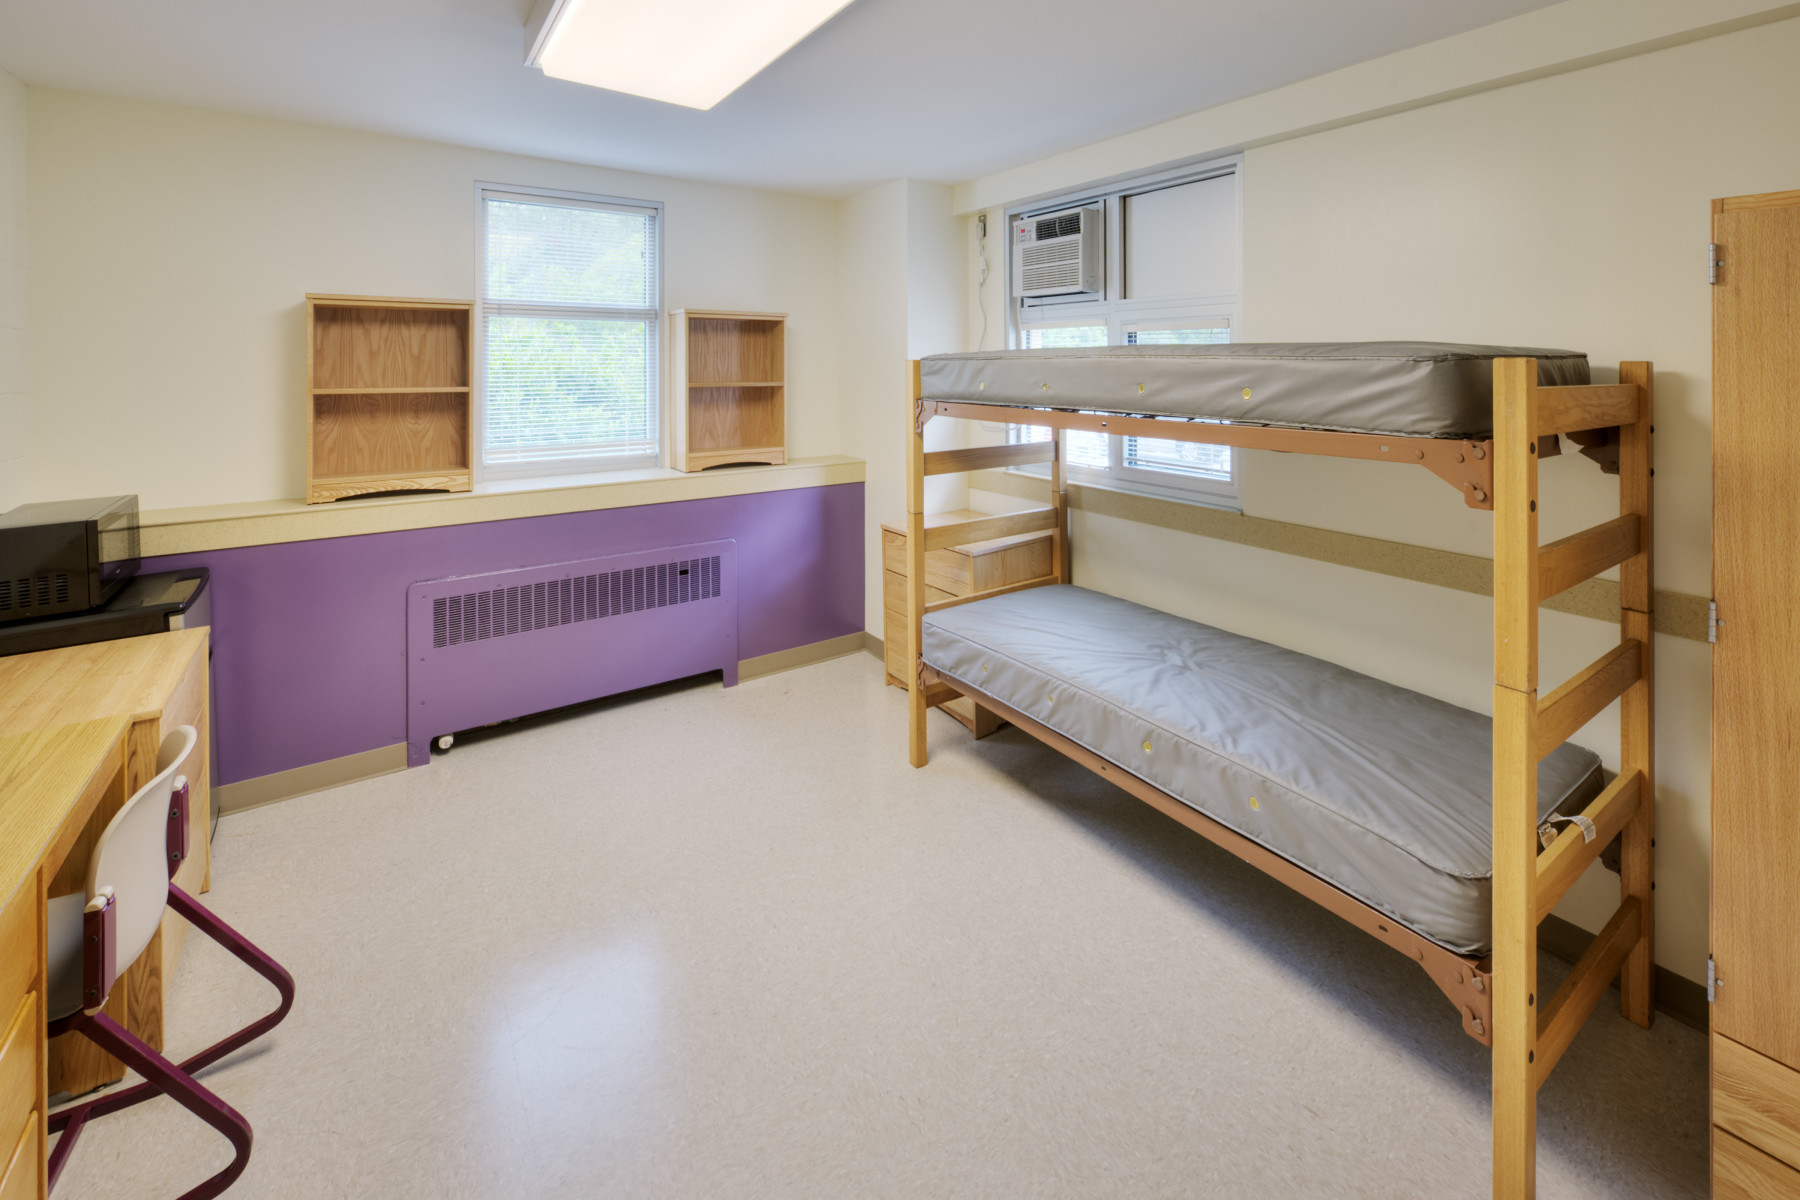 ... ECU Tyler Residence Hall Dorm Room 2 ... Part 4